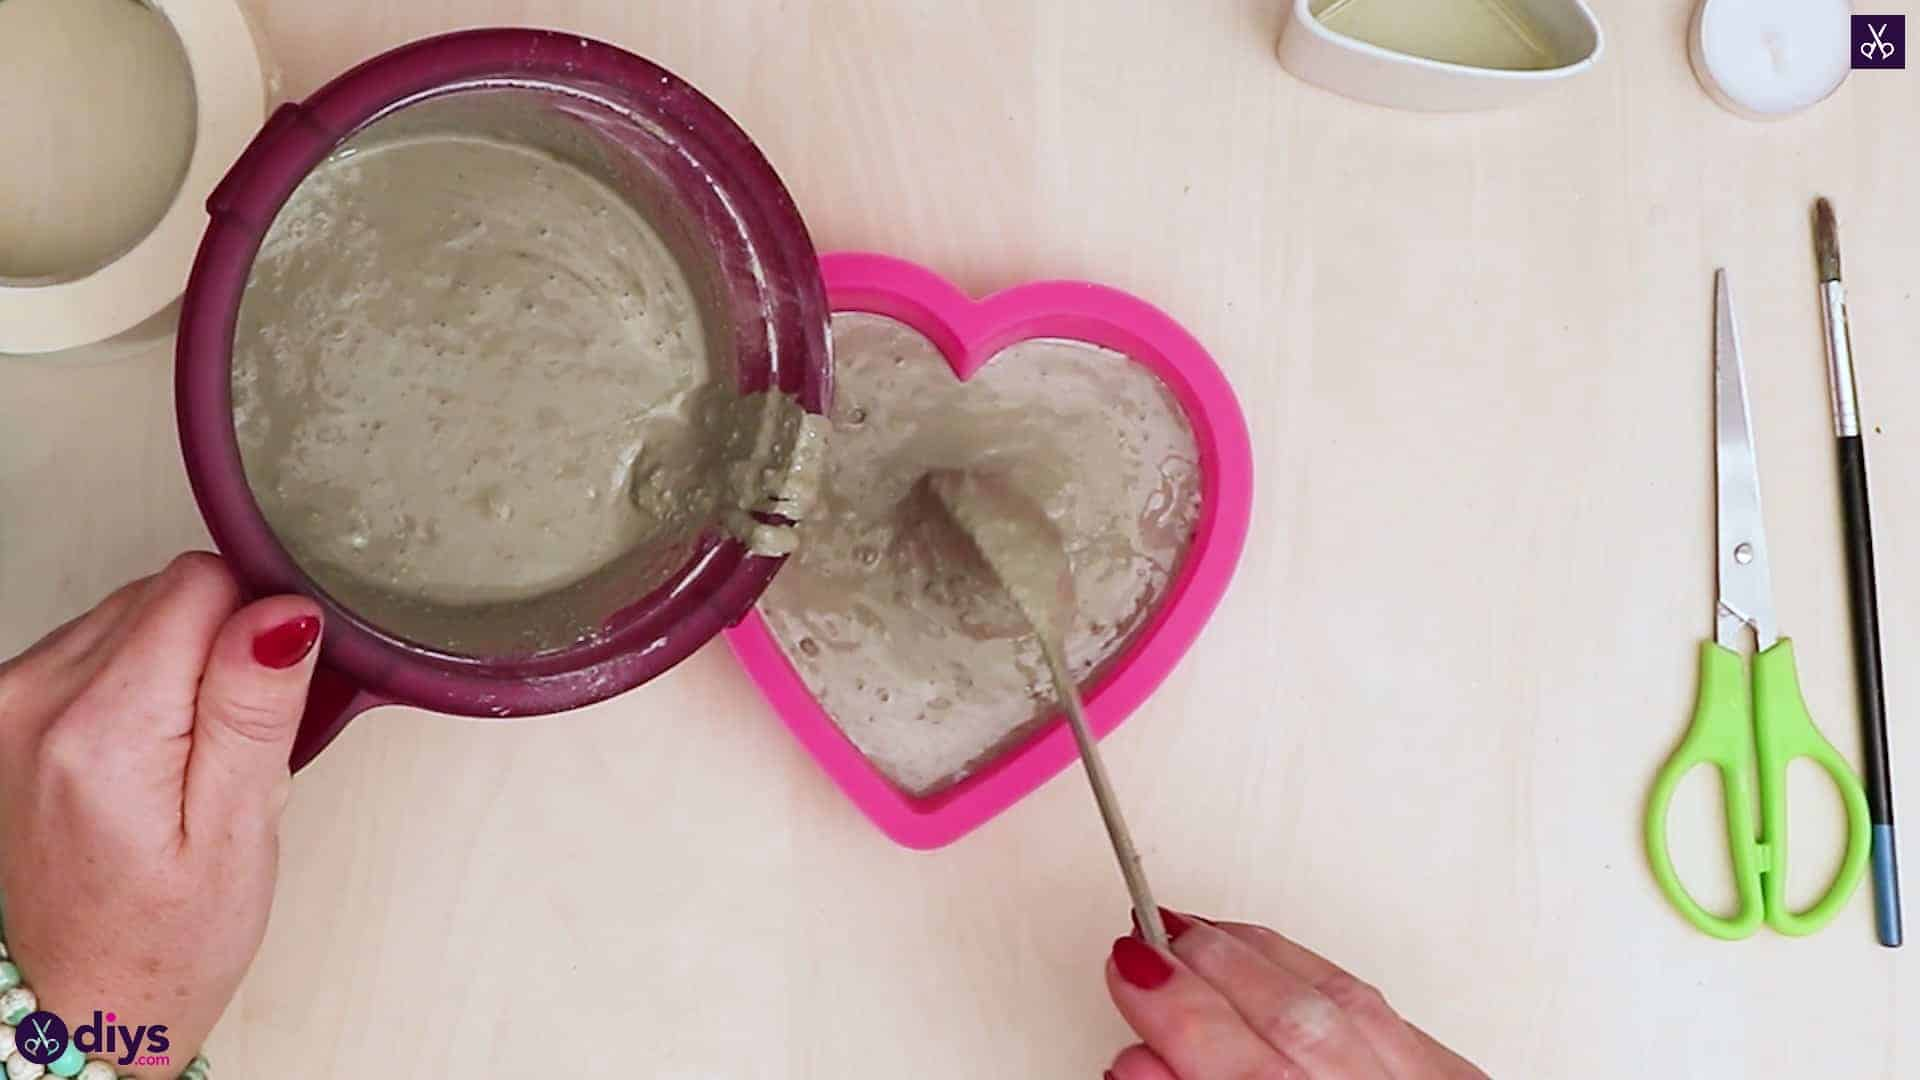 Diy concrete heart candle holder add concrete